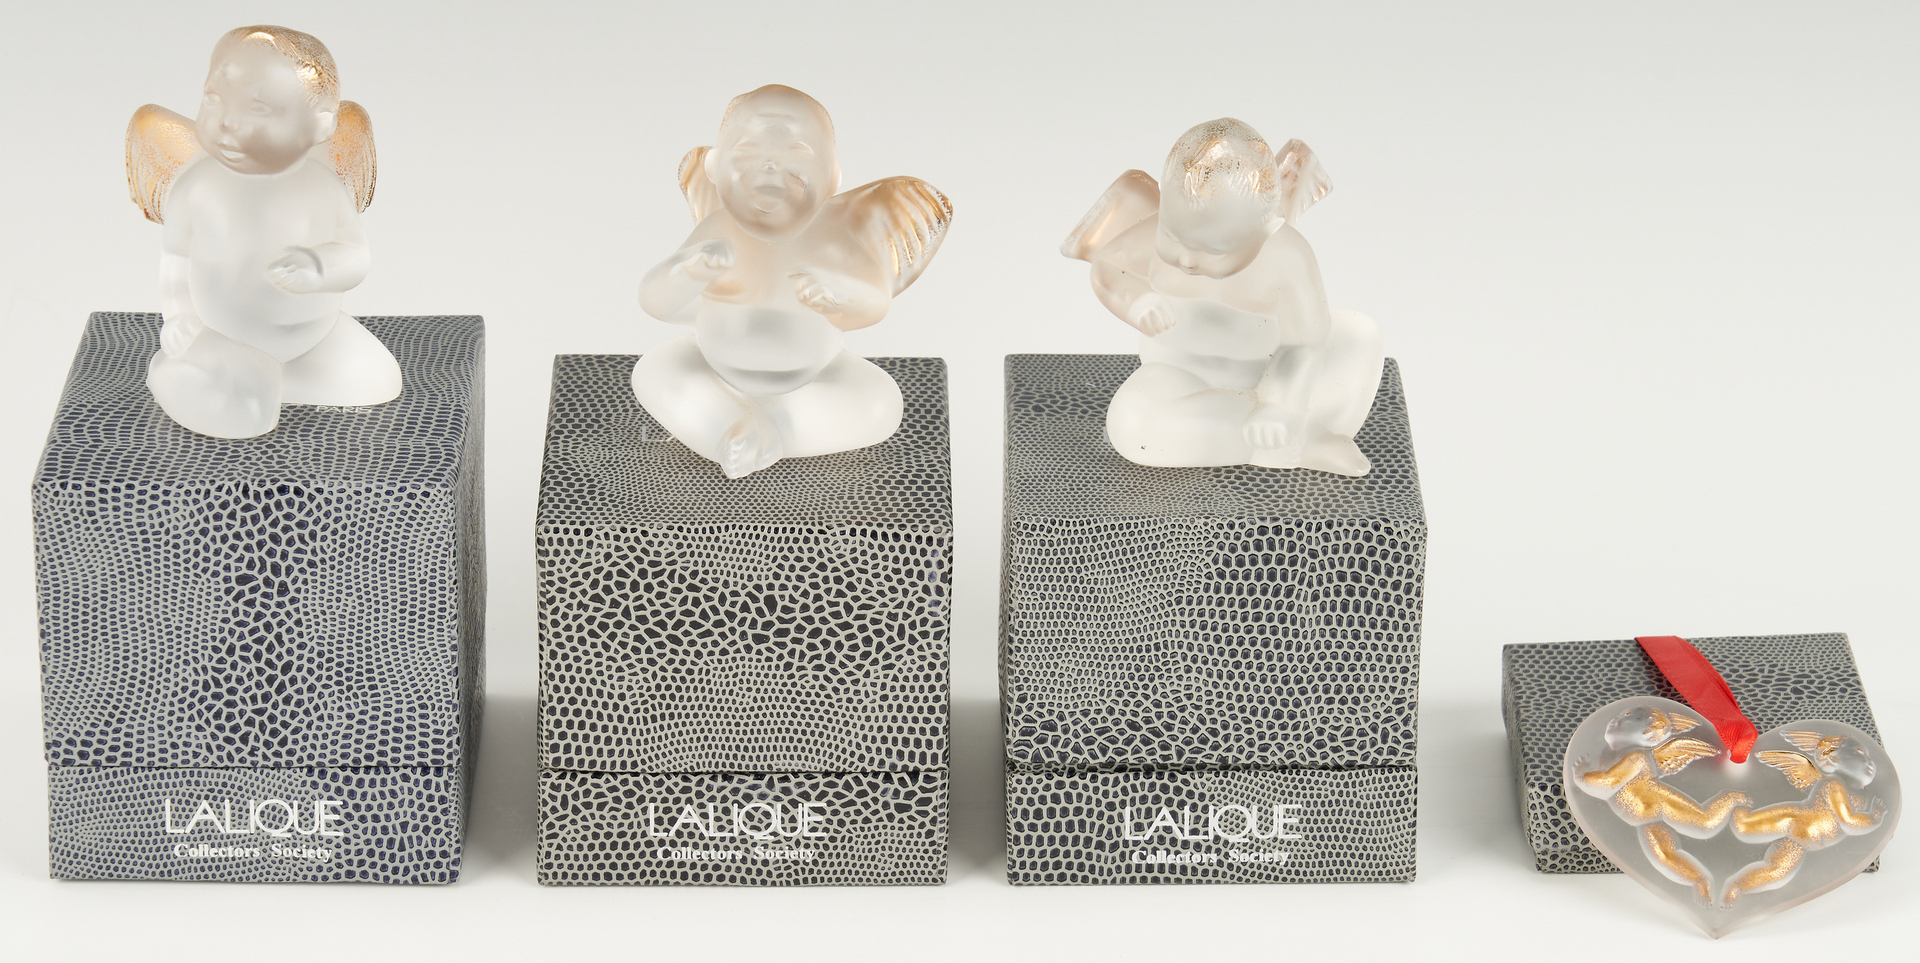 Lot 801: 14 Crystal Ornaments & Figurines, mostly Lalique